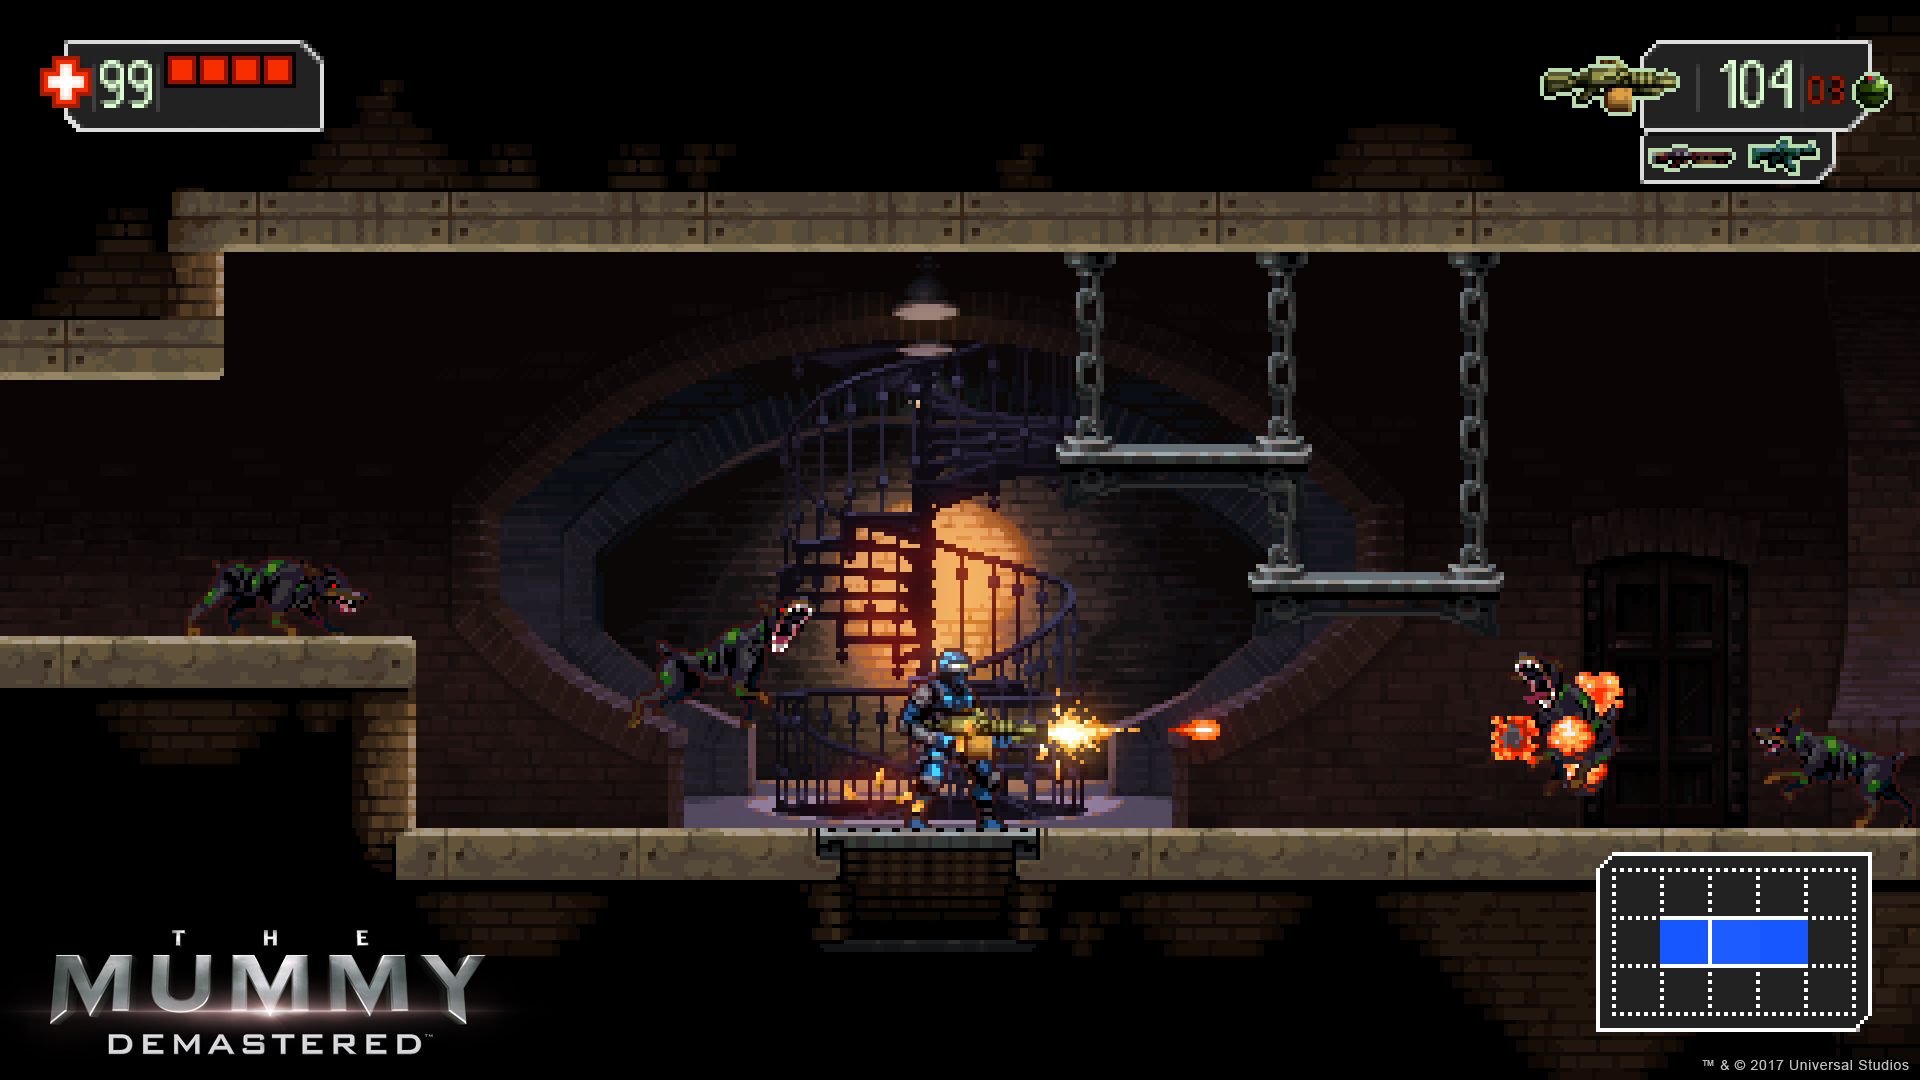 The Mummy Demastered review